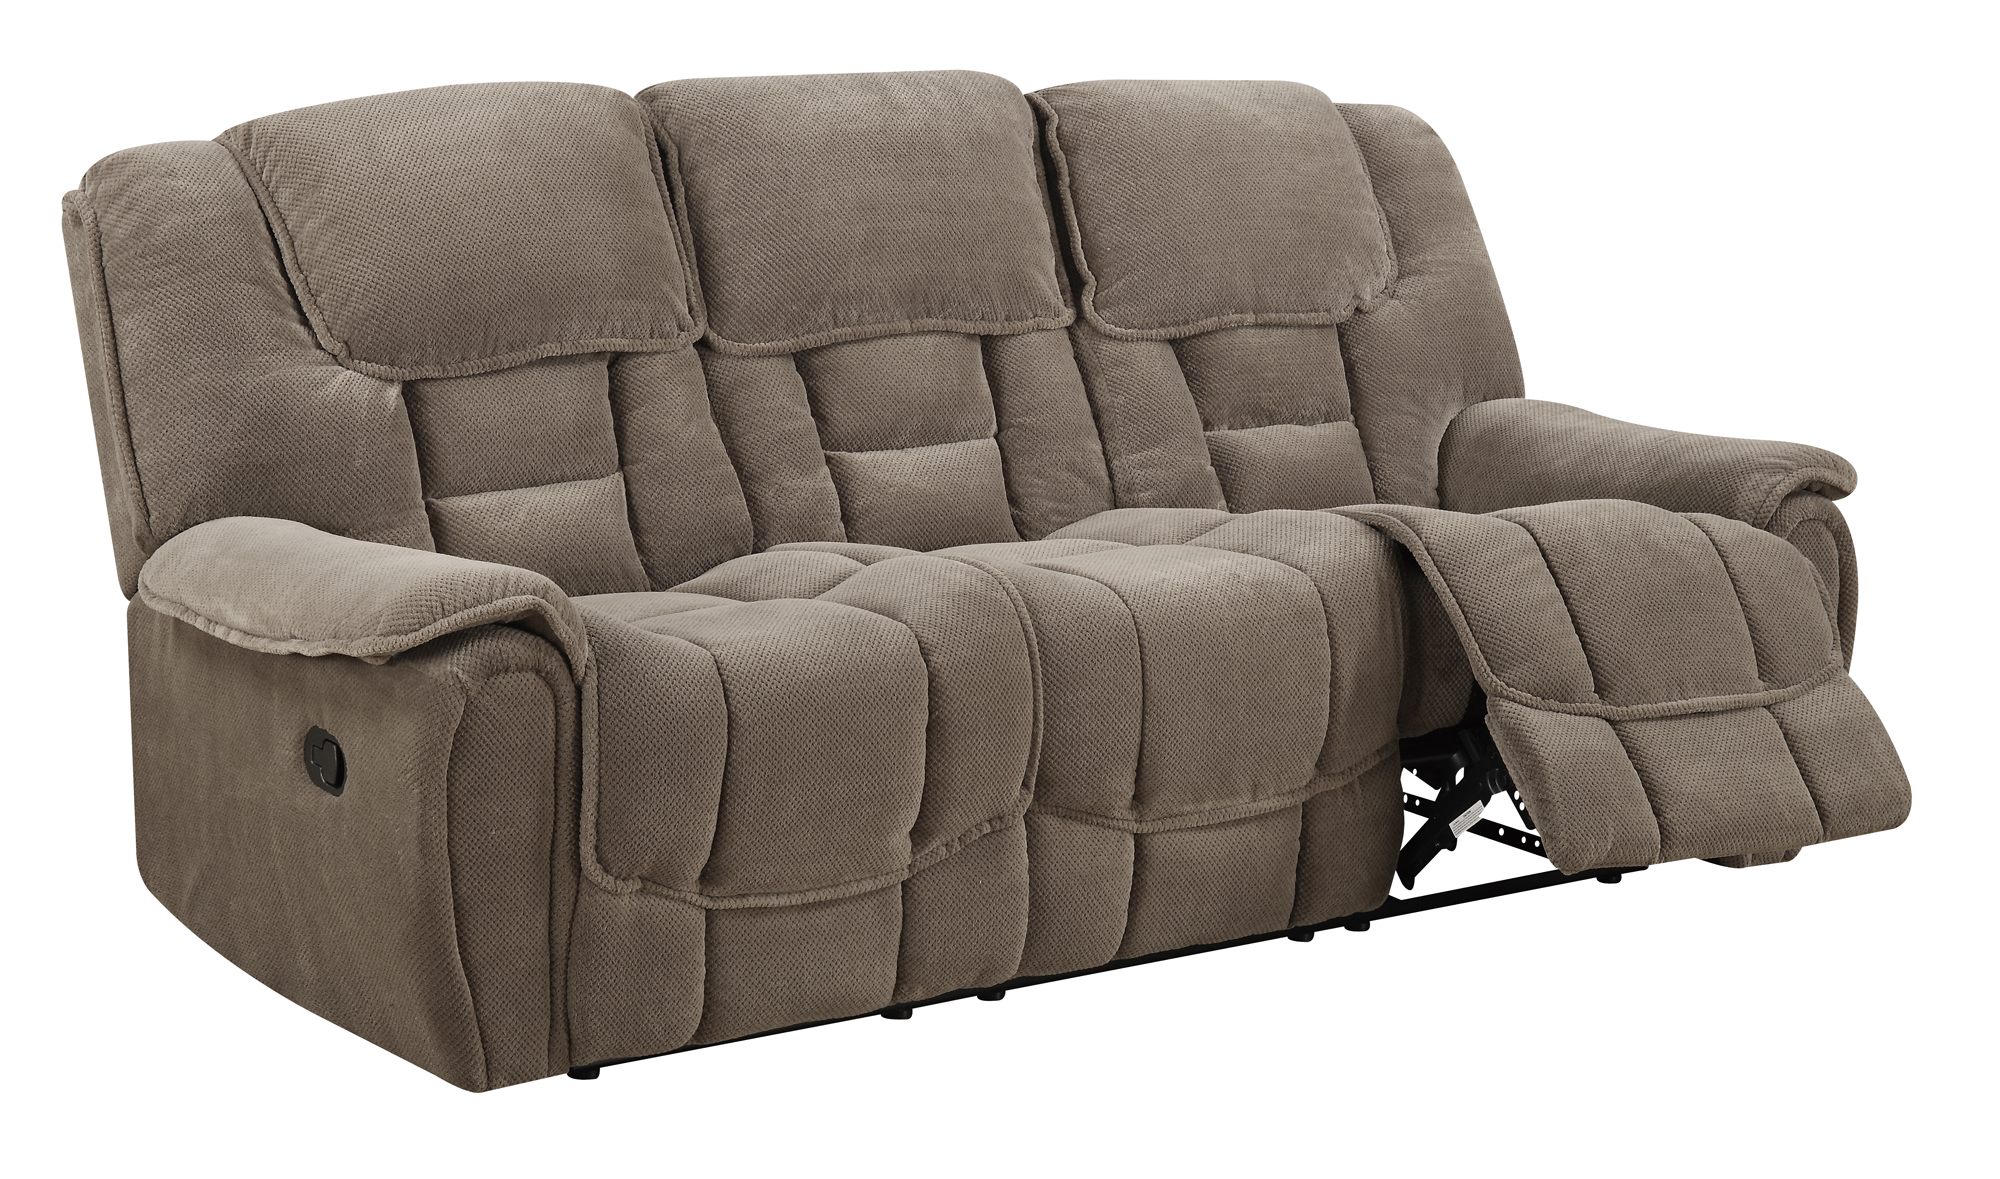 u101 taupe fabric reclining sofa by global furniture. Black Bedroom Furniture Sets. Home Design Ideas